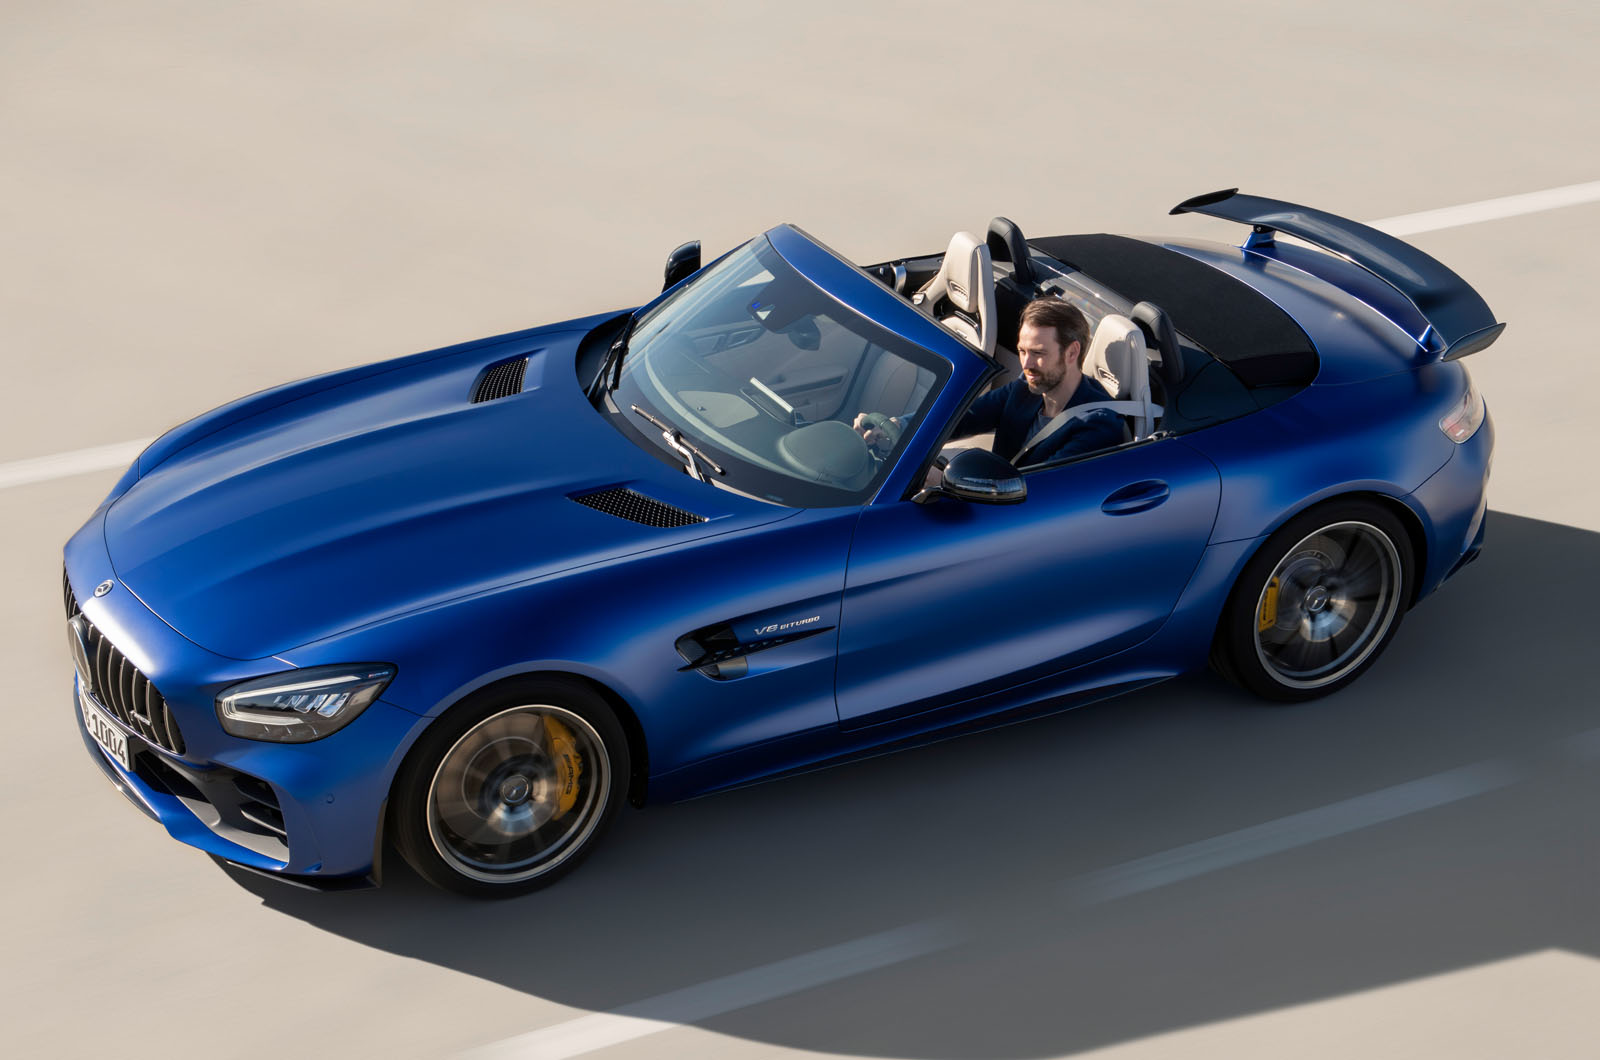 Mercedes Amg Gt R Roadster Uk Prices And Specs Revealed Autocar